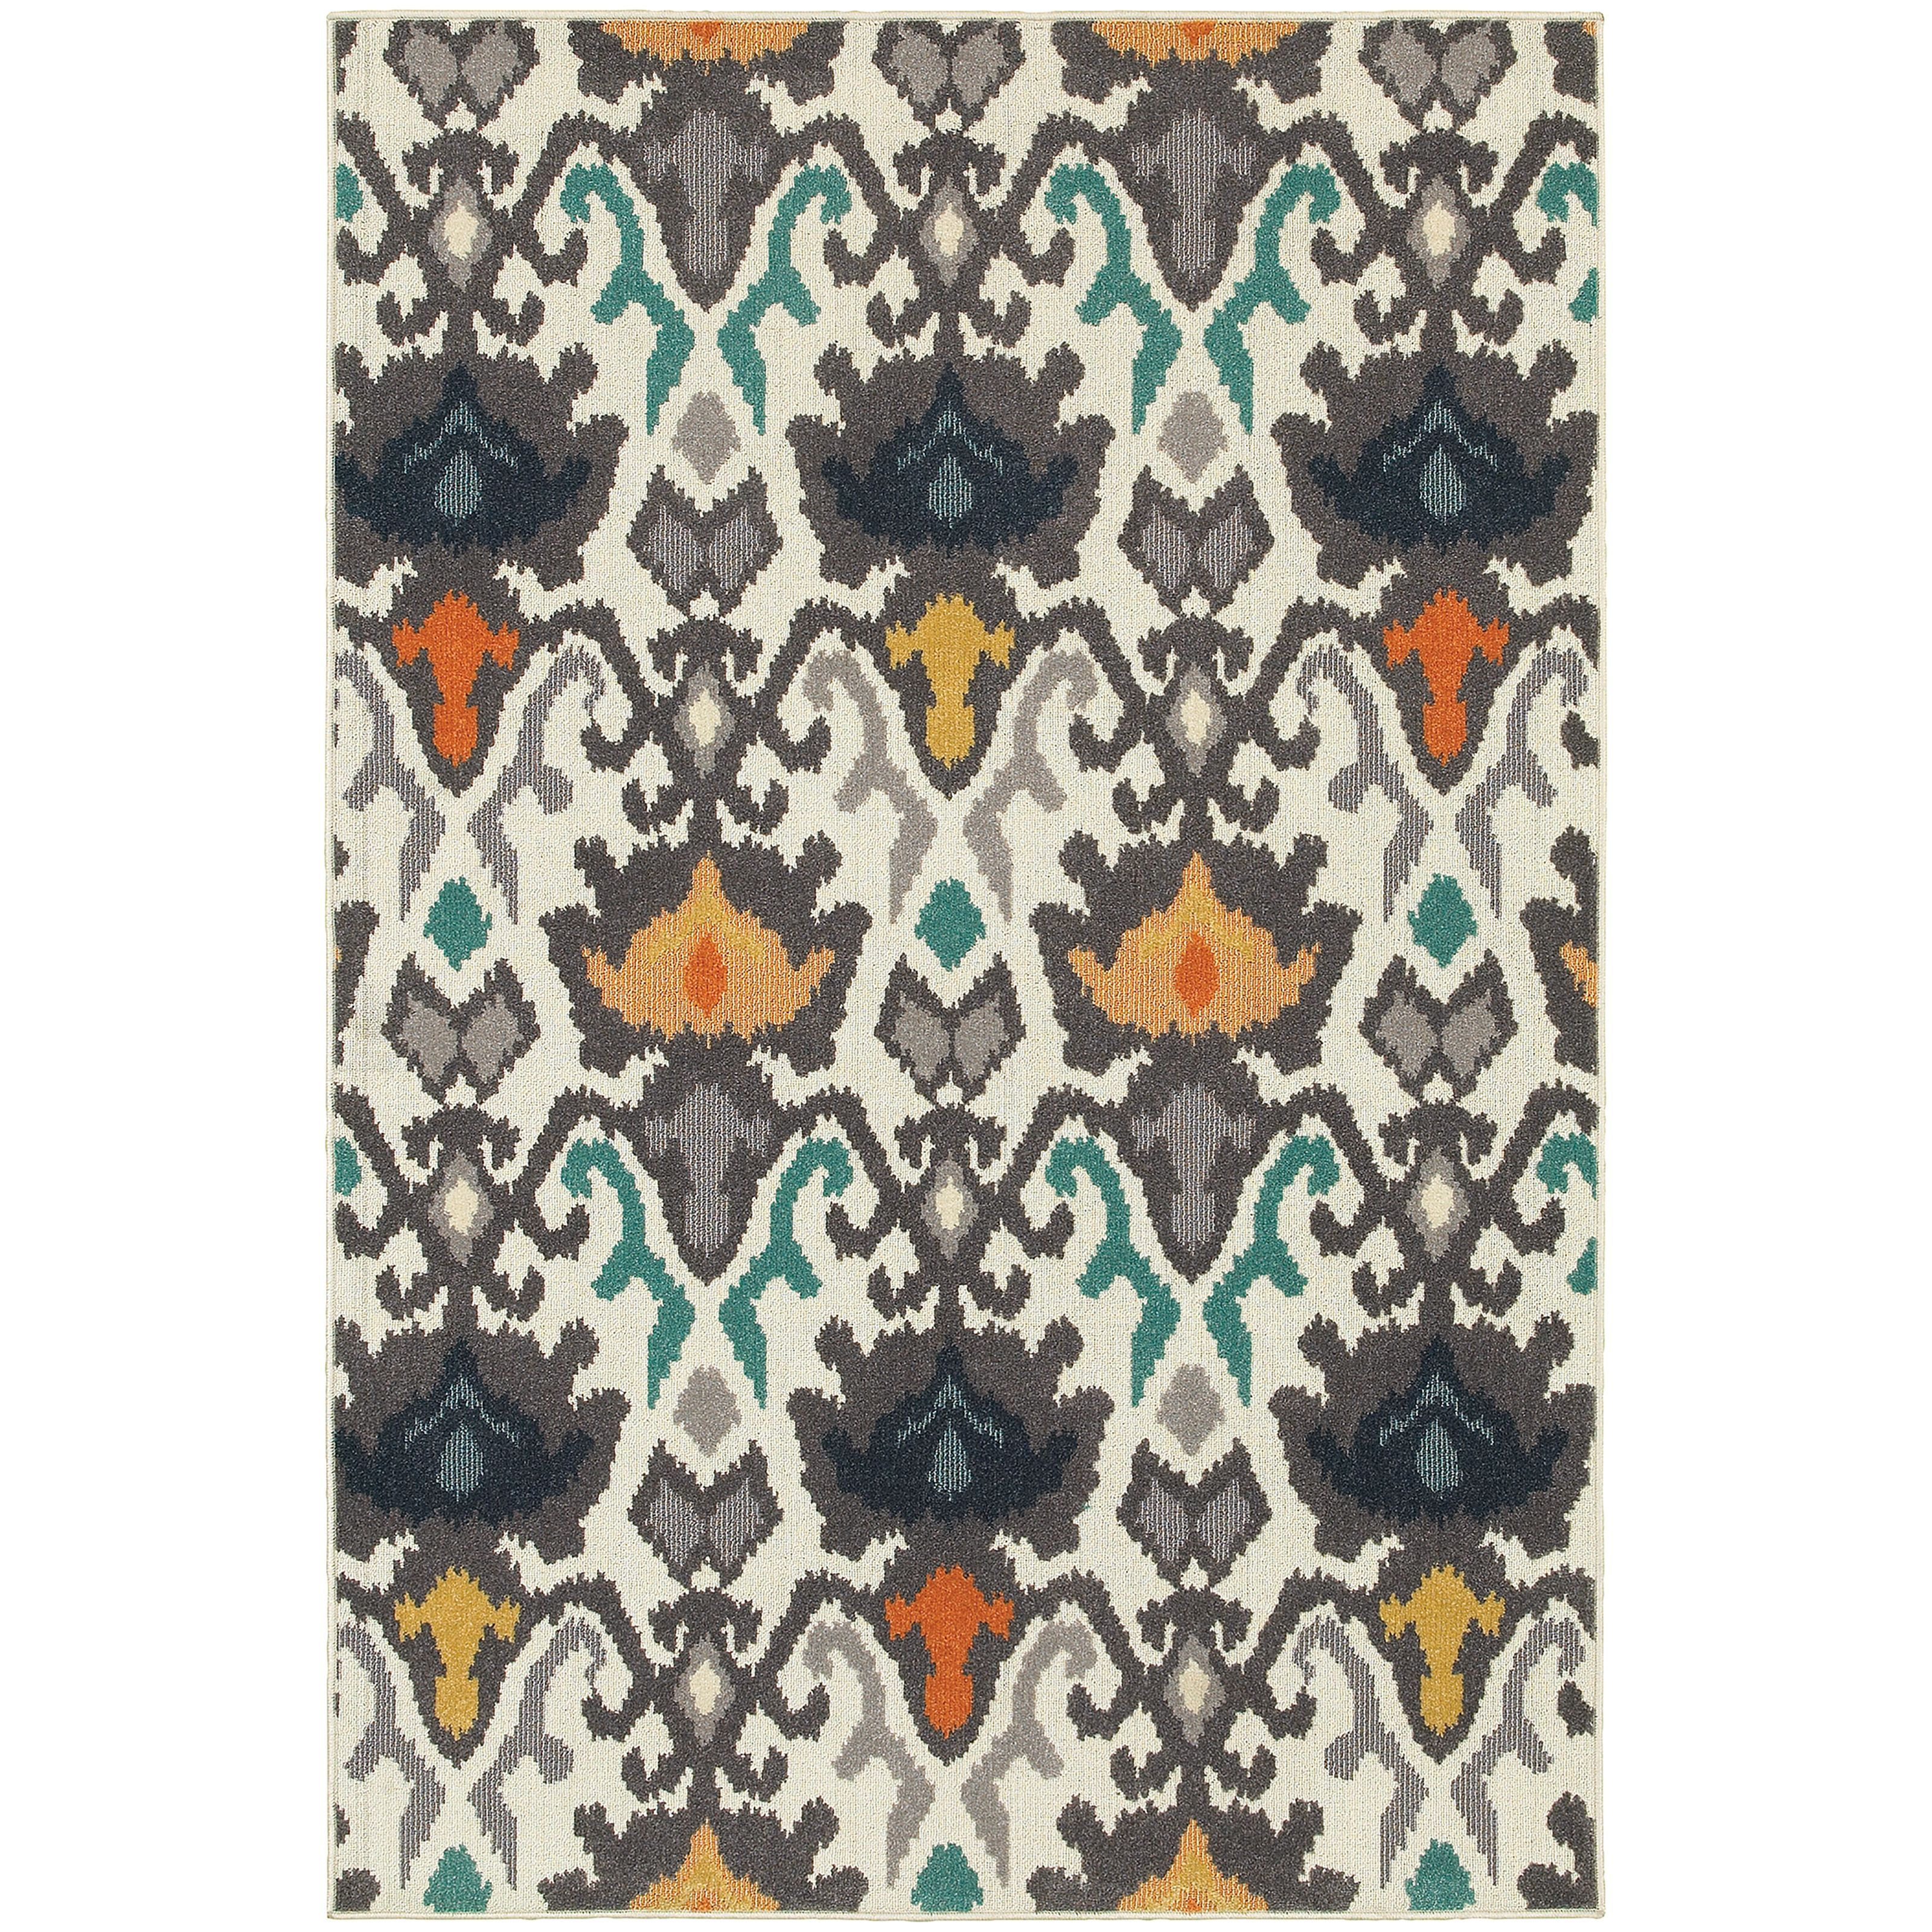 Stylehaven Tribal Ikat Ivory Multi Indoor Outdoor Area Rug 7 10x10 10 7 10 X 10 10 Cool Rugs Colorful Rugs Area Rugs